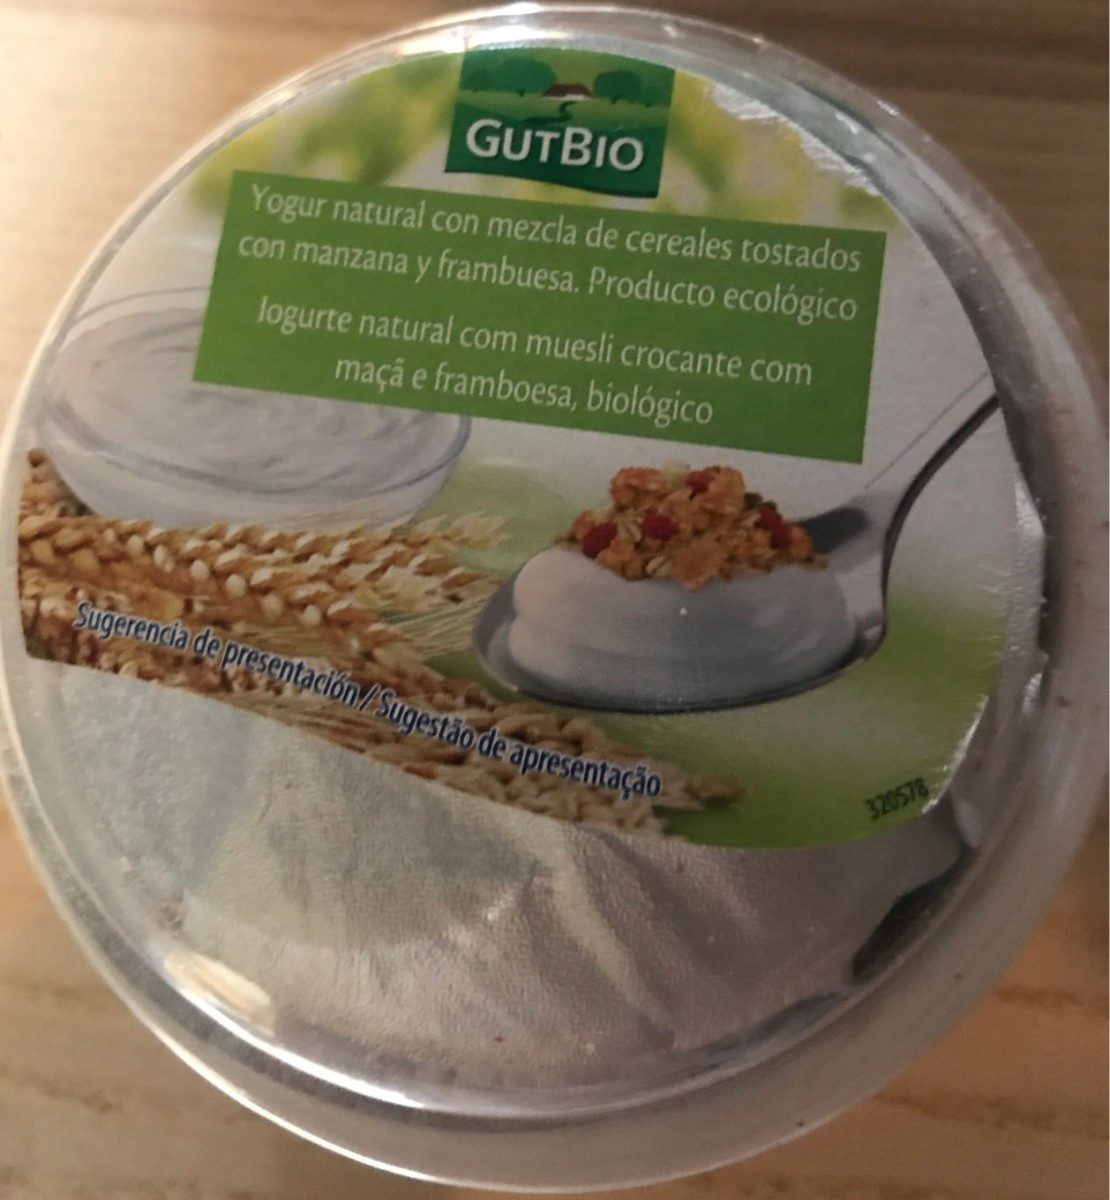 Yogurt cereales GutBio - Product - fr